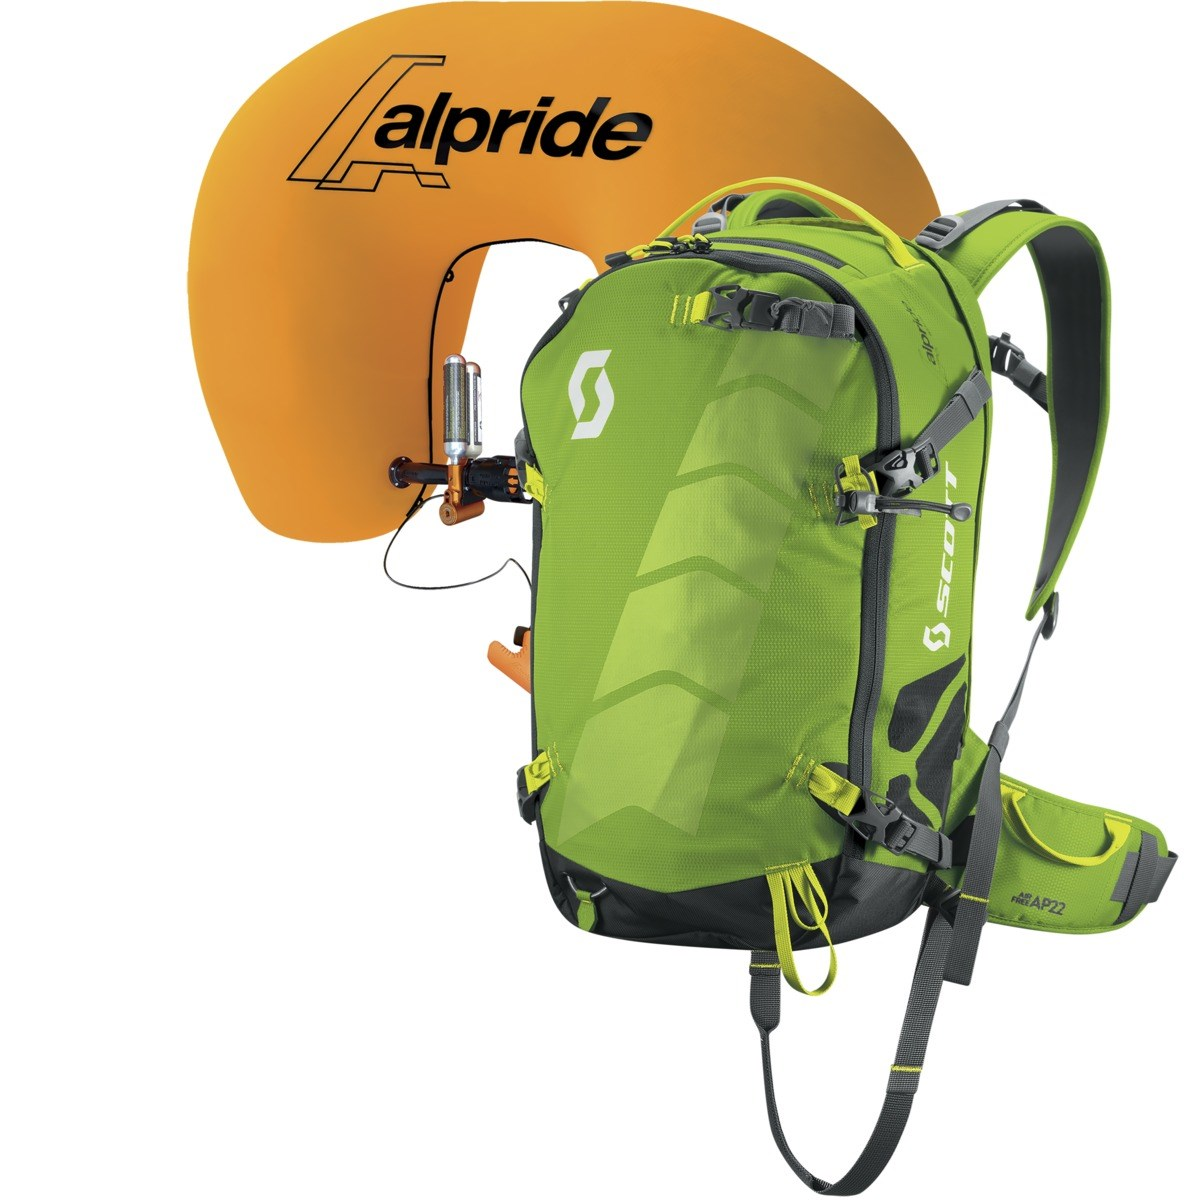 Scott AirFree AP 22 Avalanche Airbag System Apple Green Grey £530.00 4c000949de183